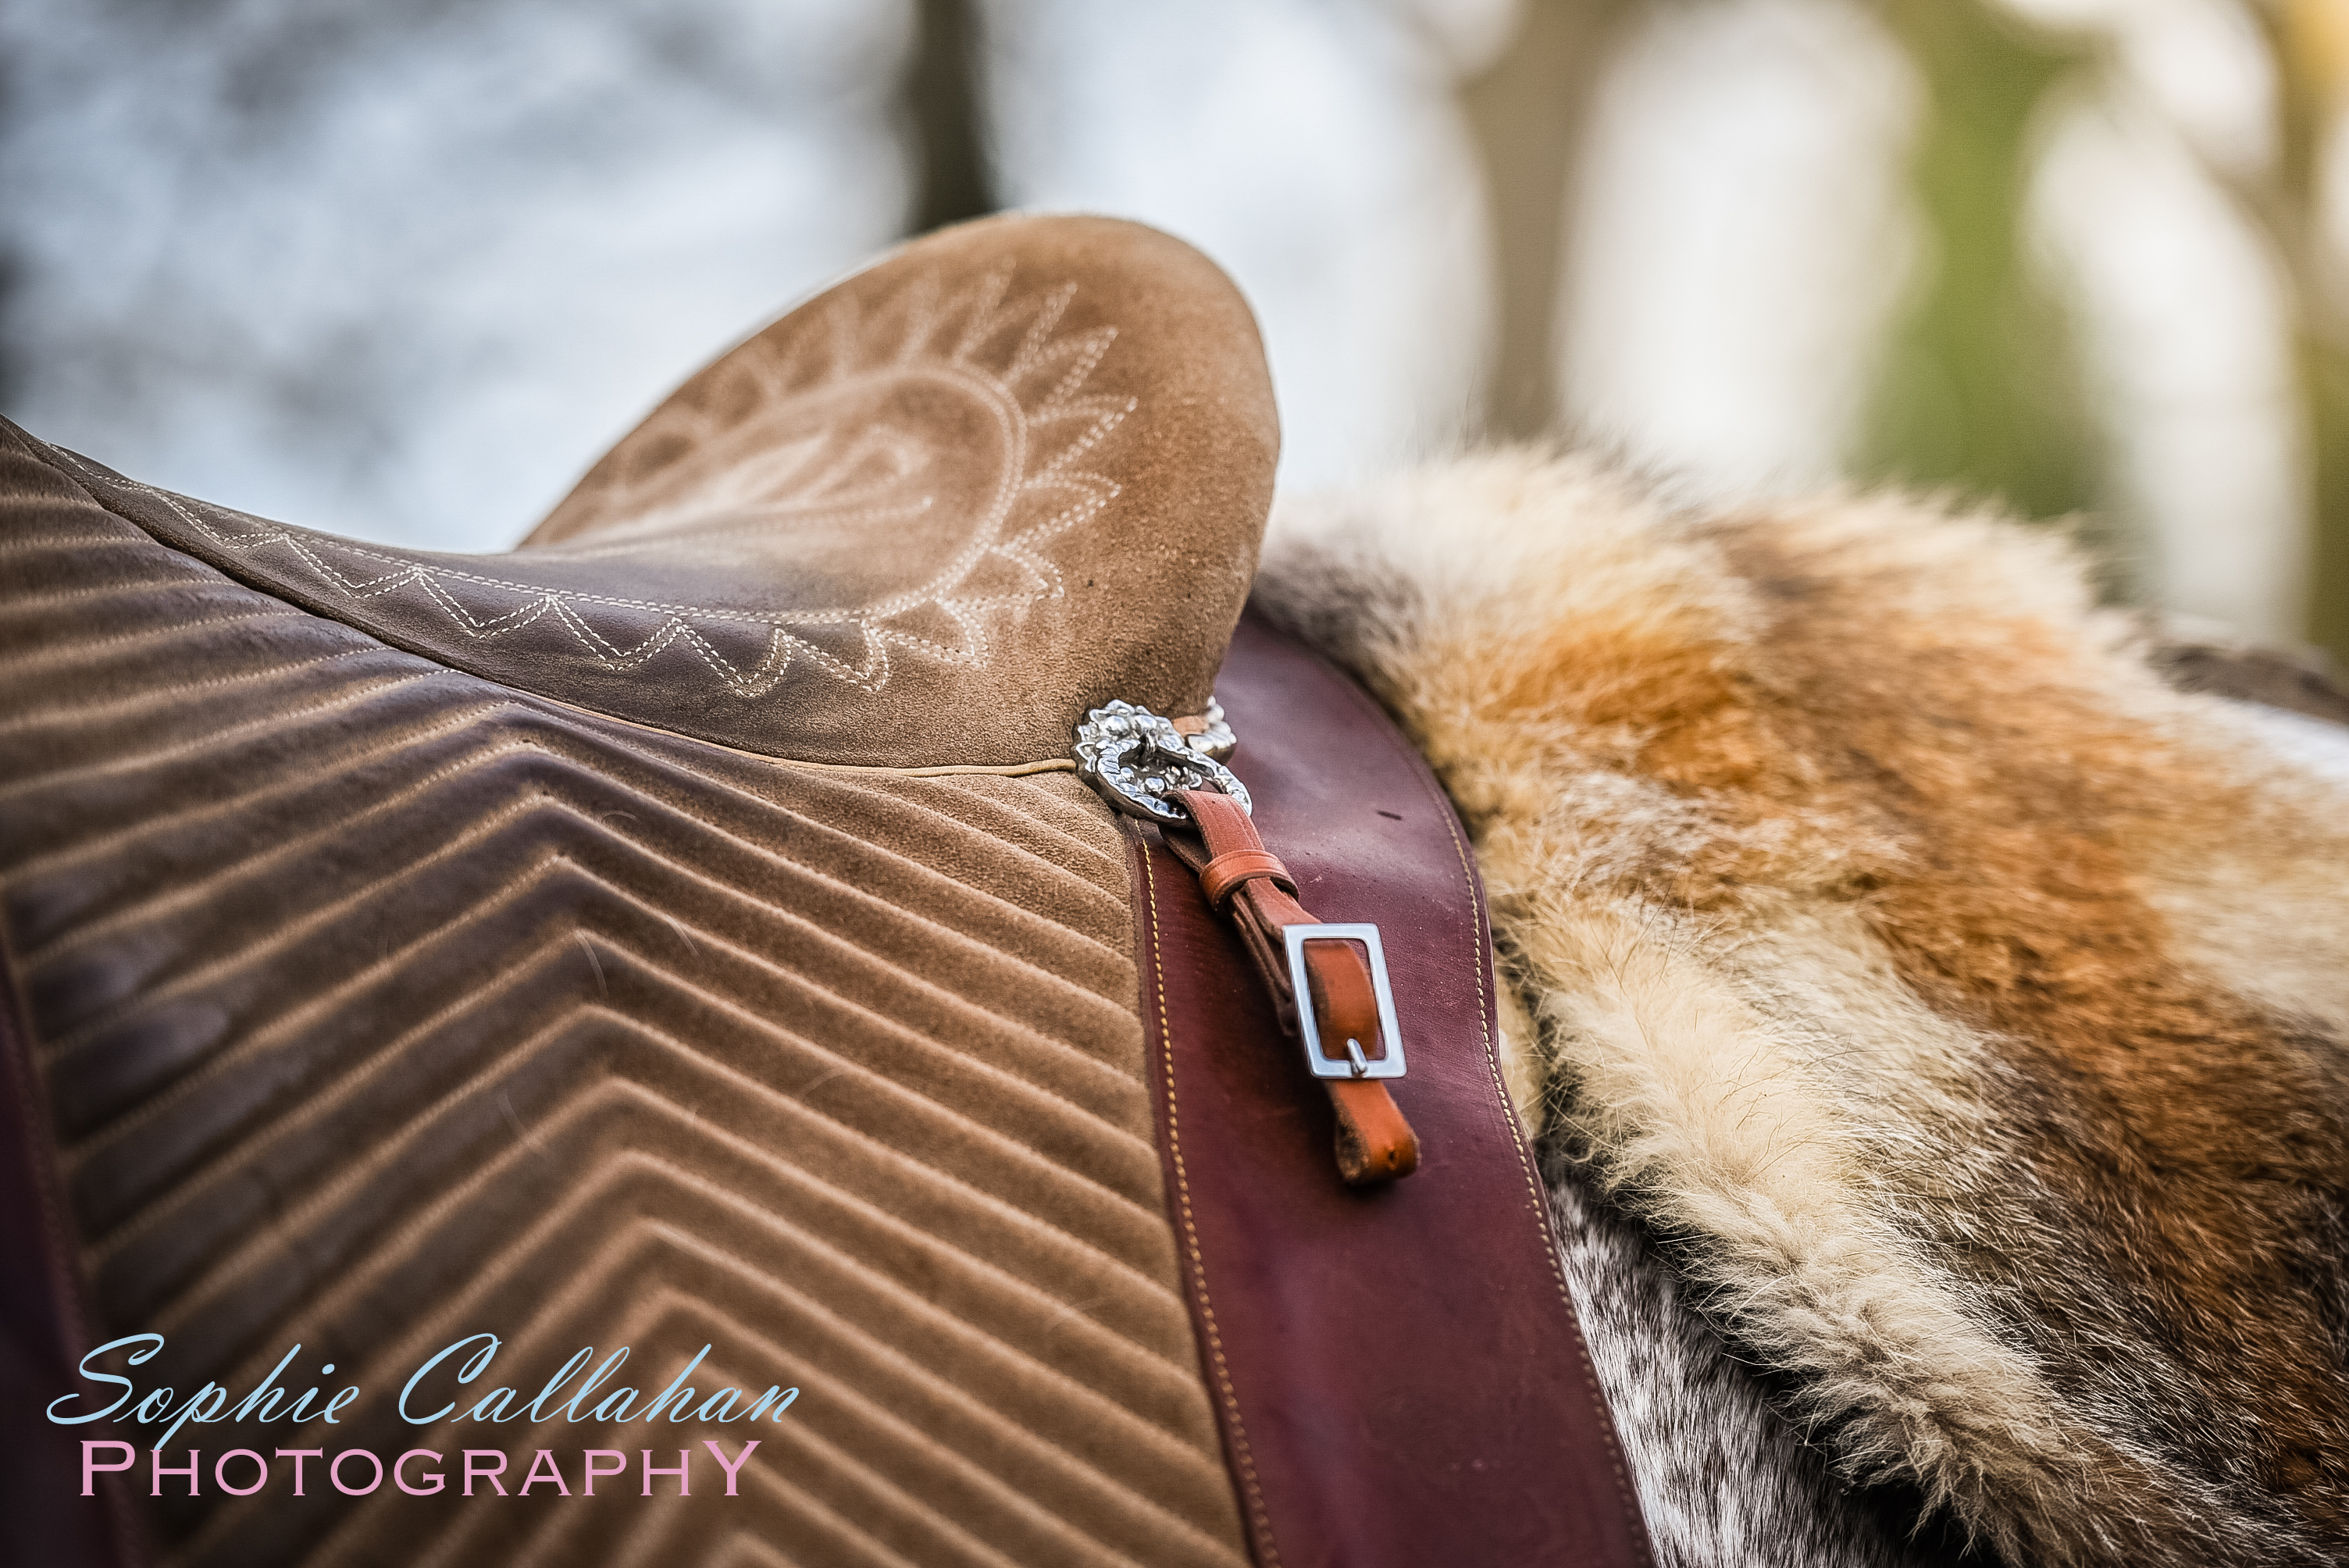 Sharing Your Business Secrets - I via sophiecallahanblog.com I #equinephotography #photography #equineblogger